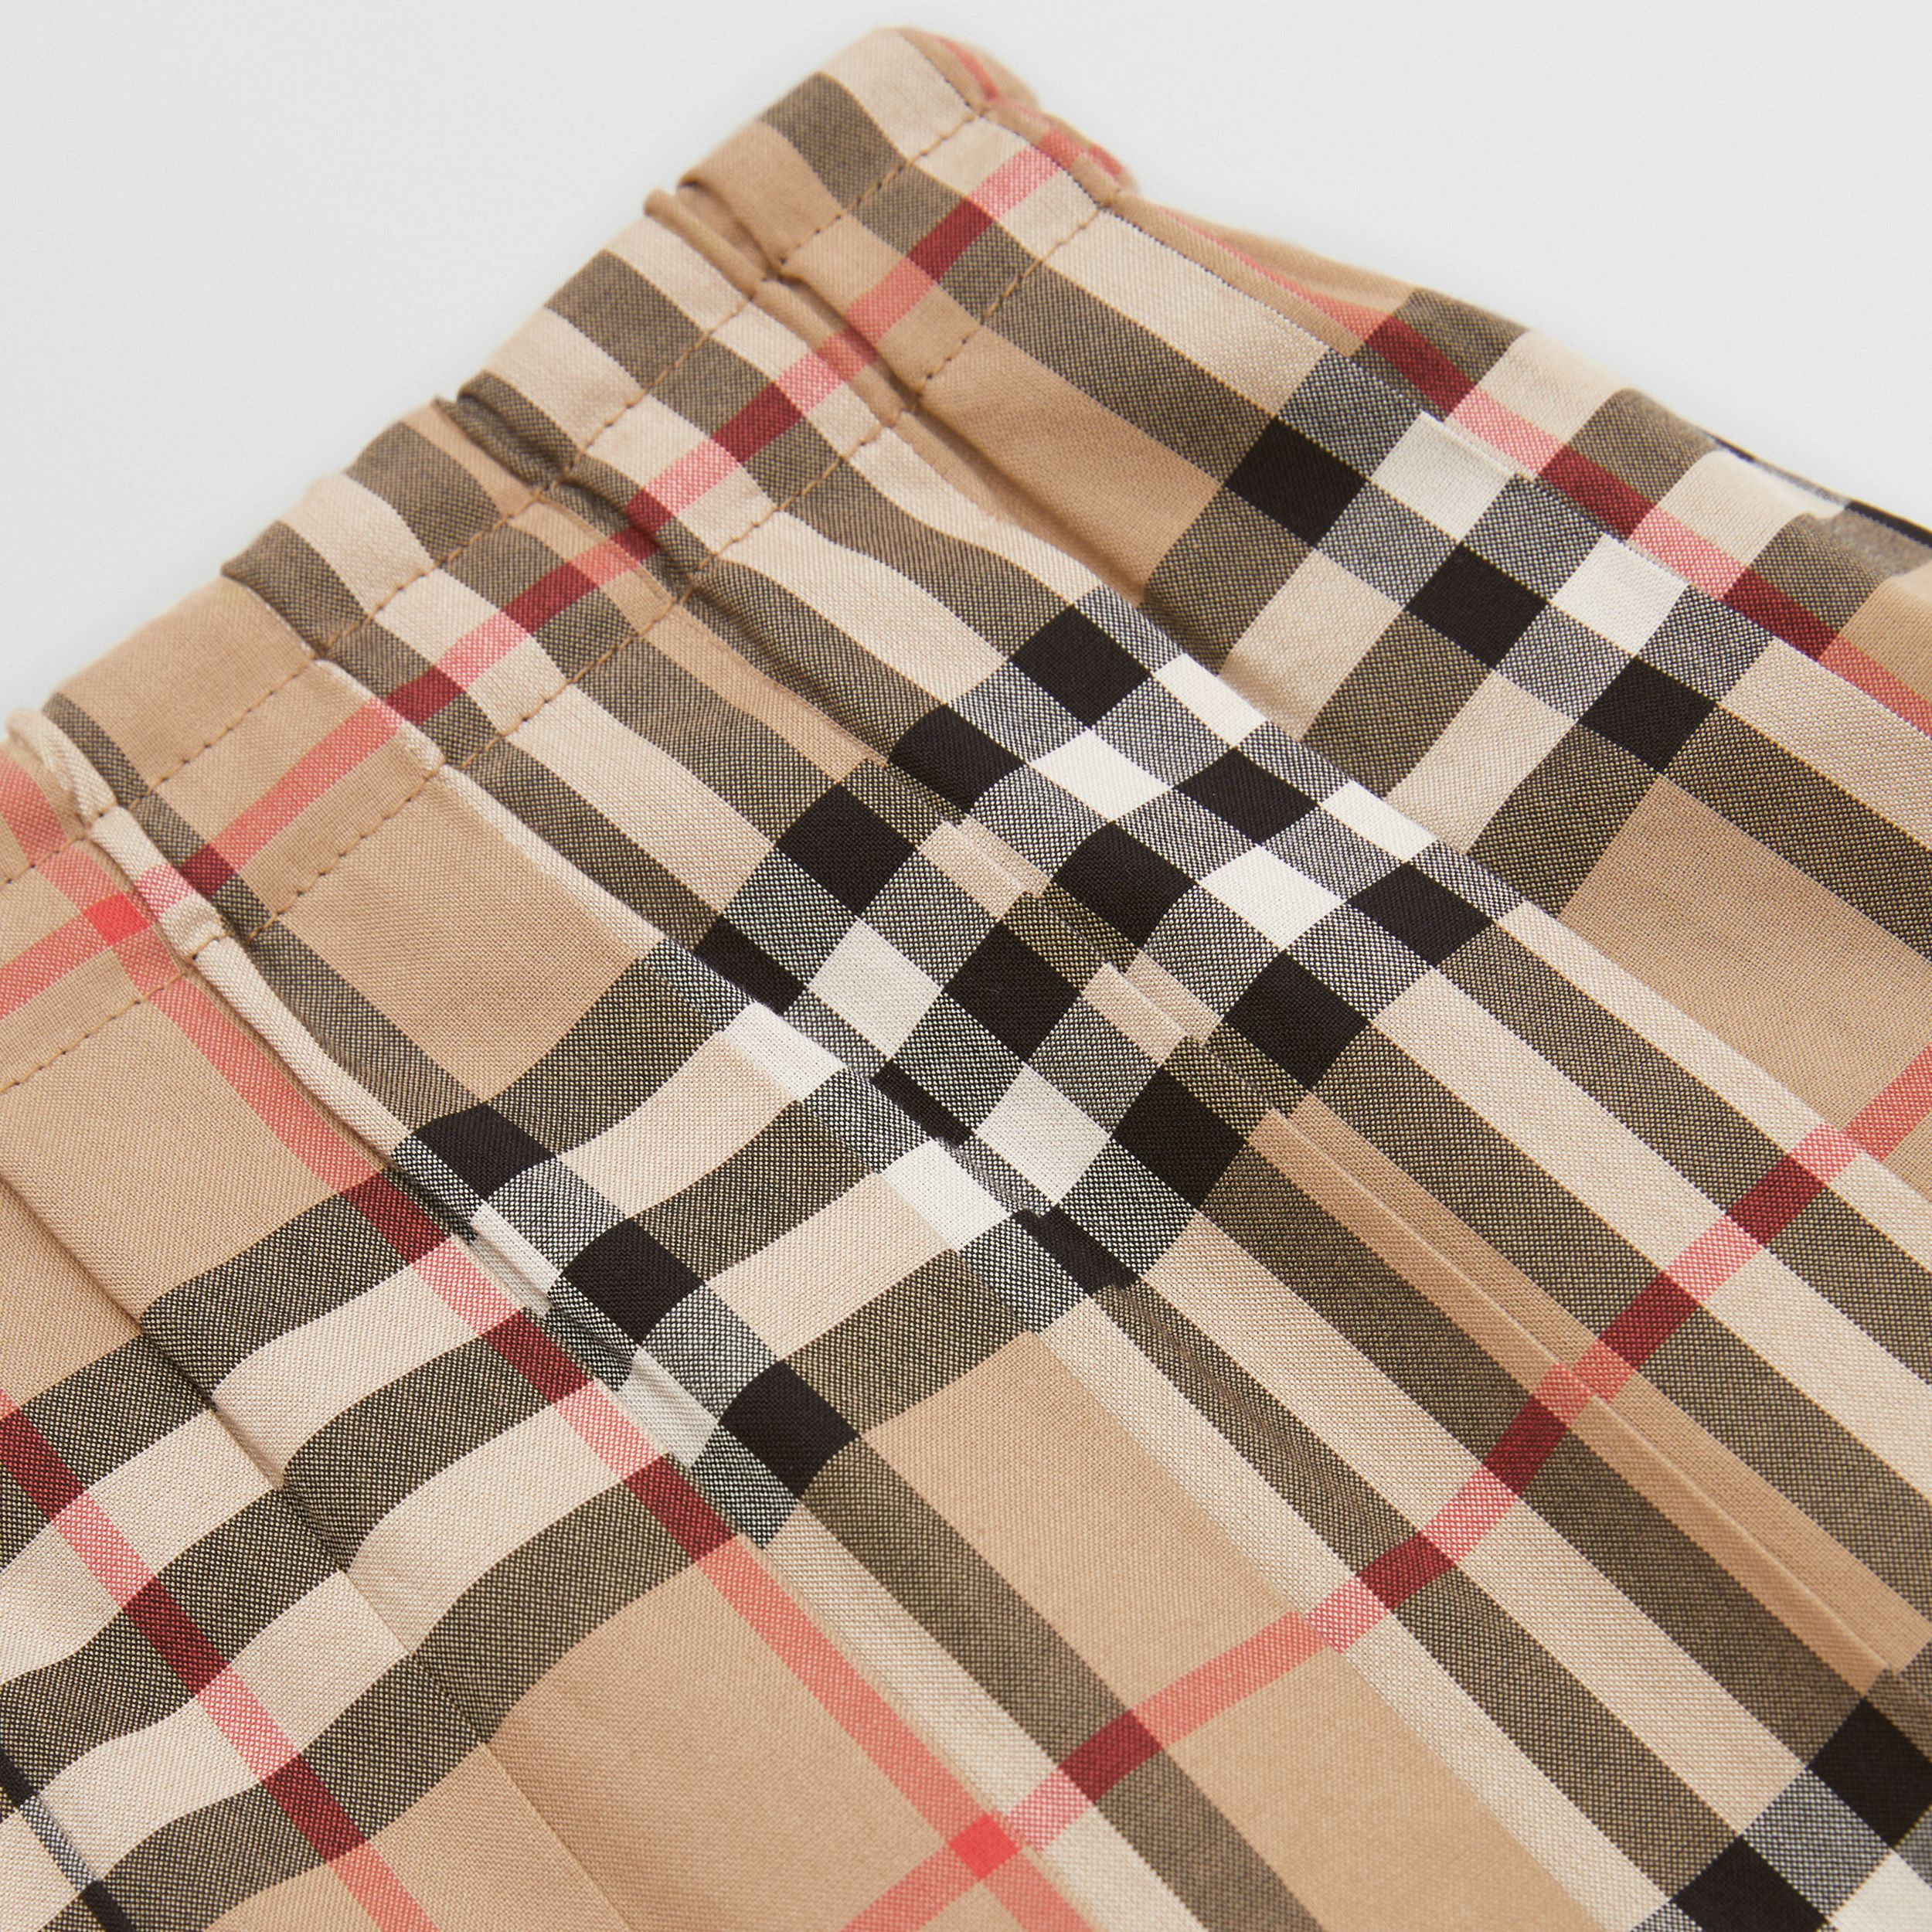 Vintage Check Cotton Pleated Skirt in Archive Beige | Burberry United States - 2